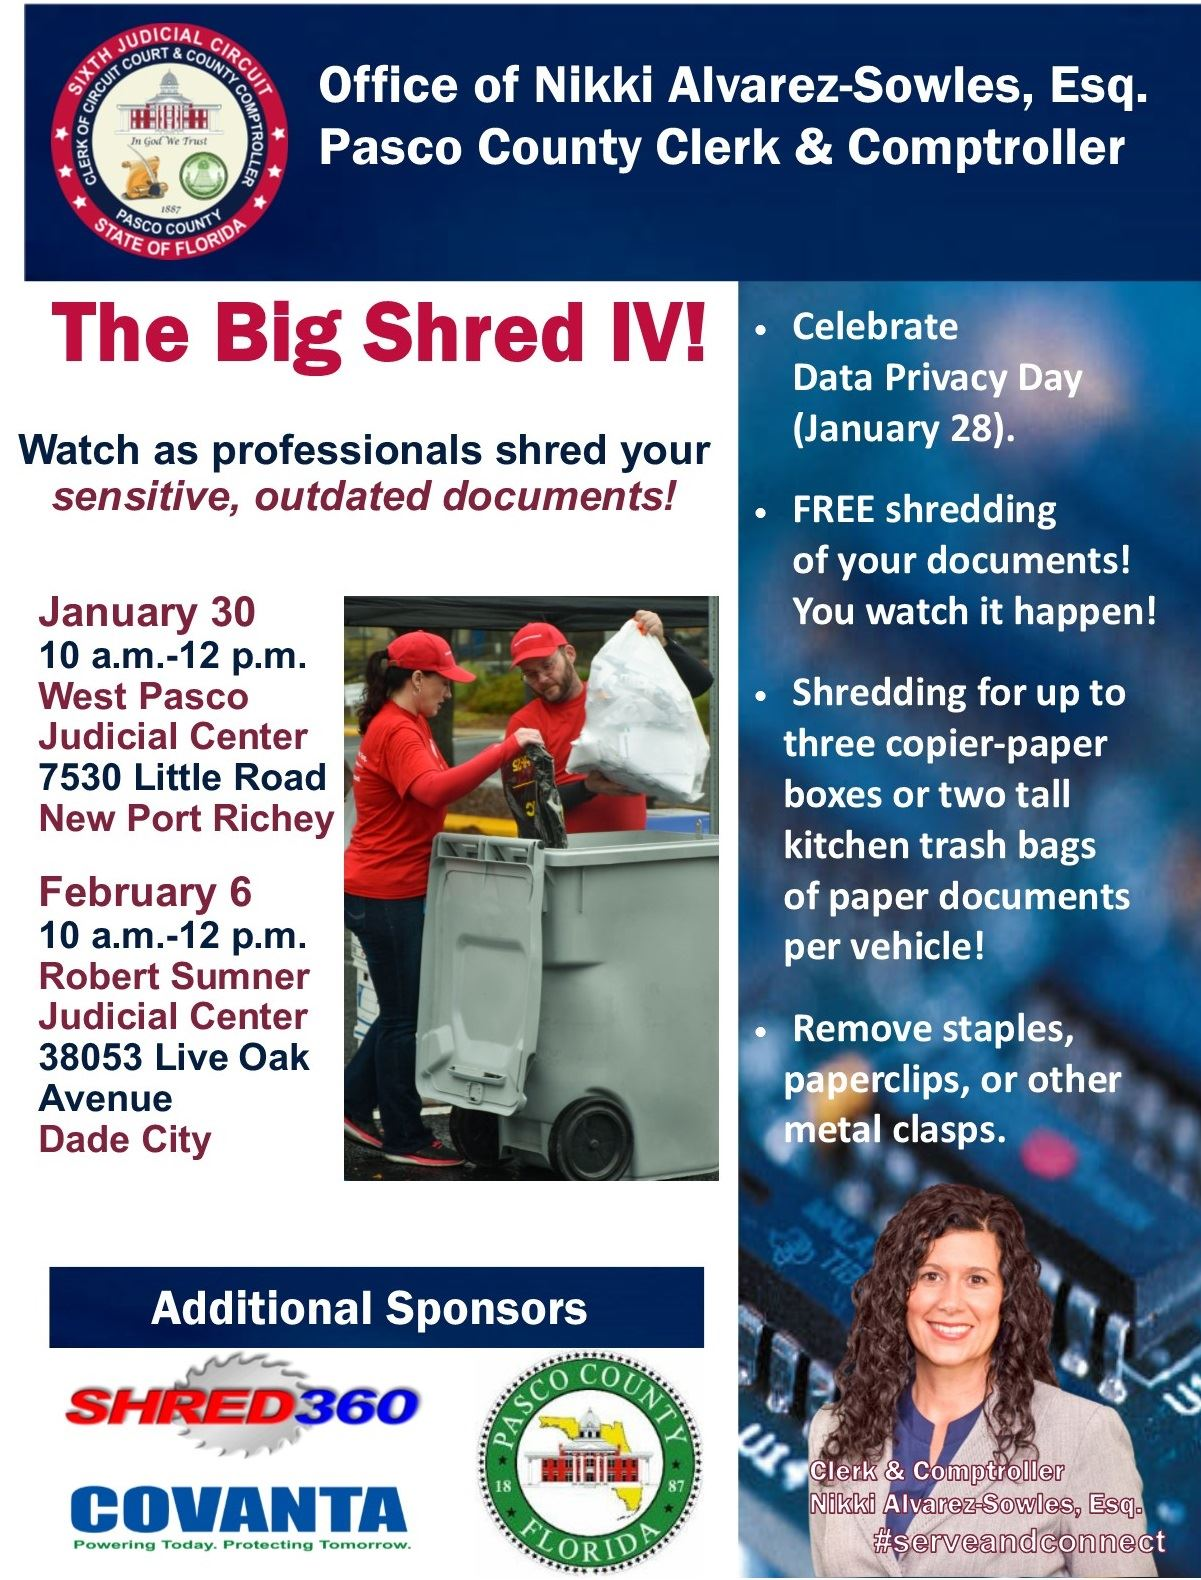 Big Shred IV announcement with man and woman in red T-shirts dumping documents in large trash can.